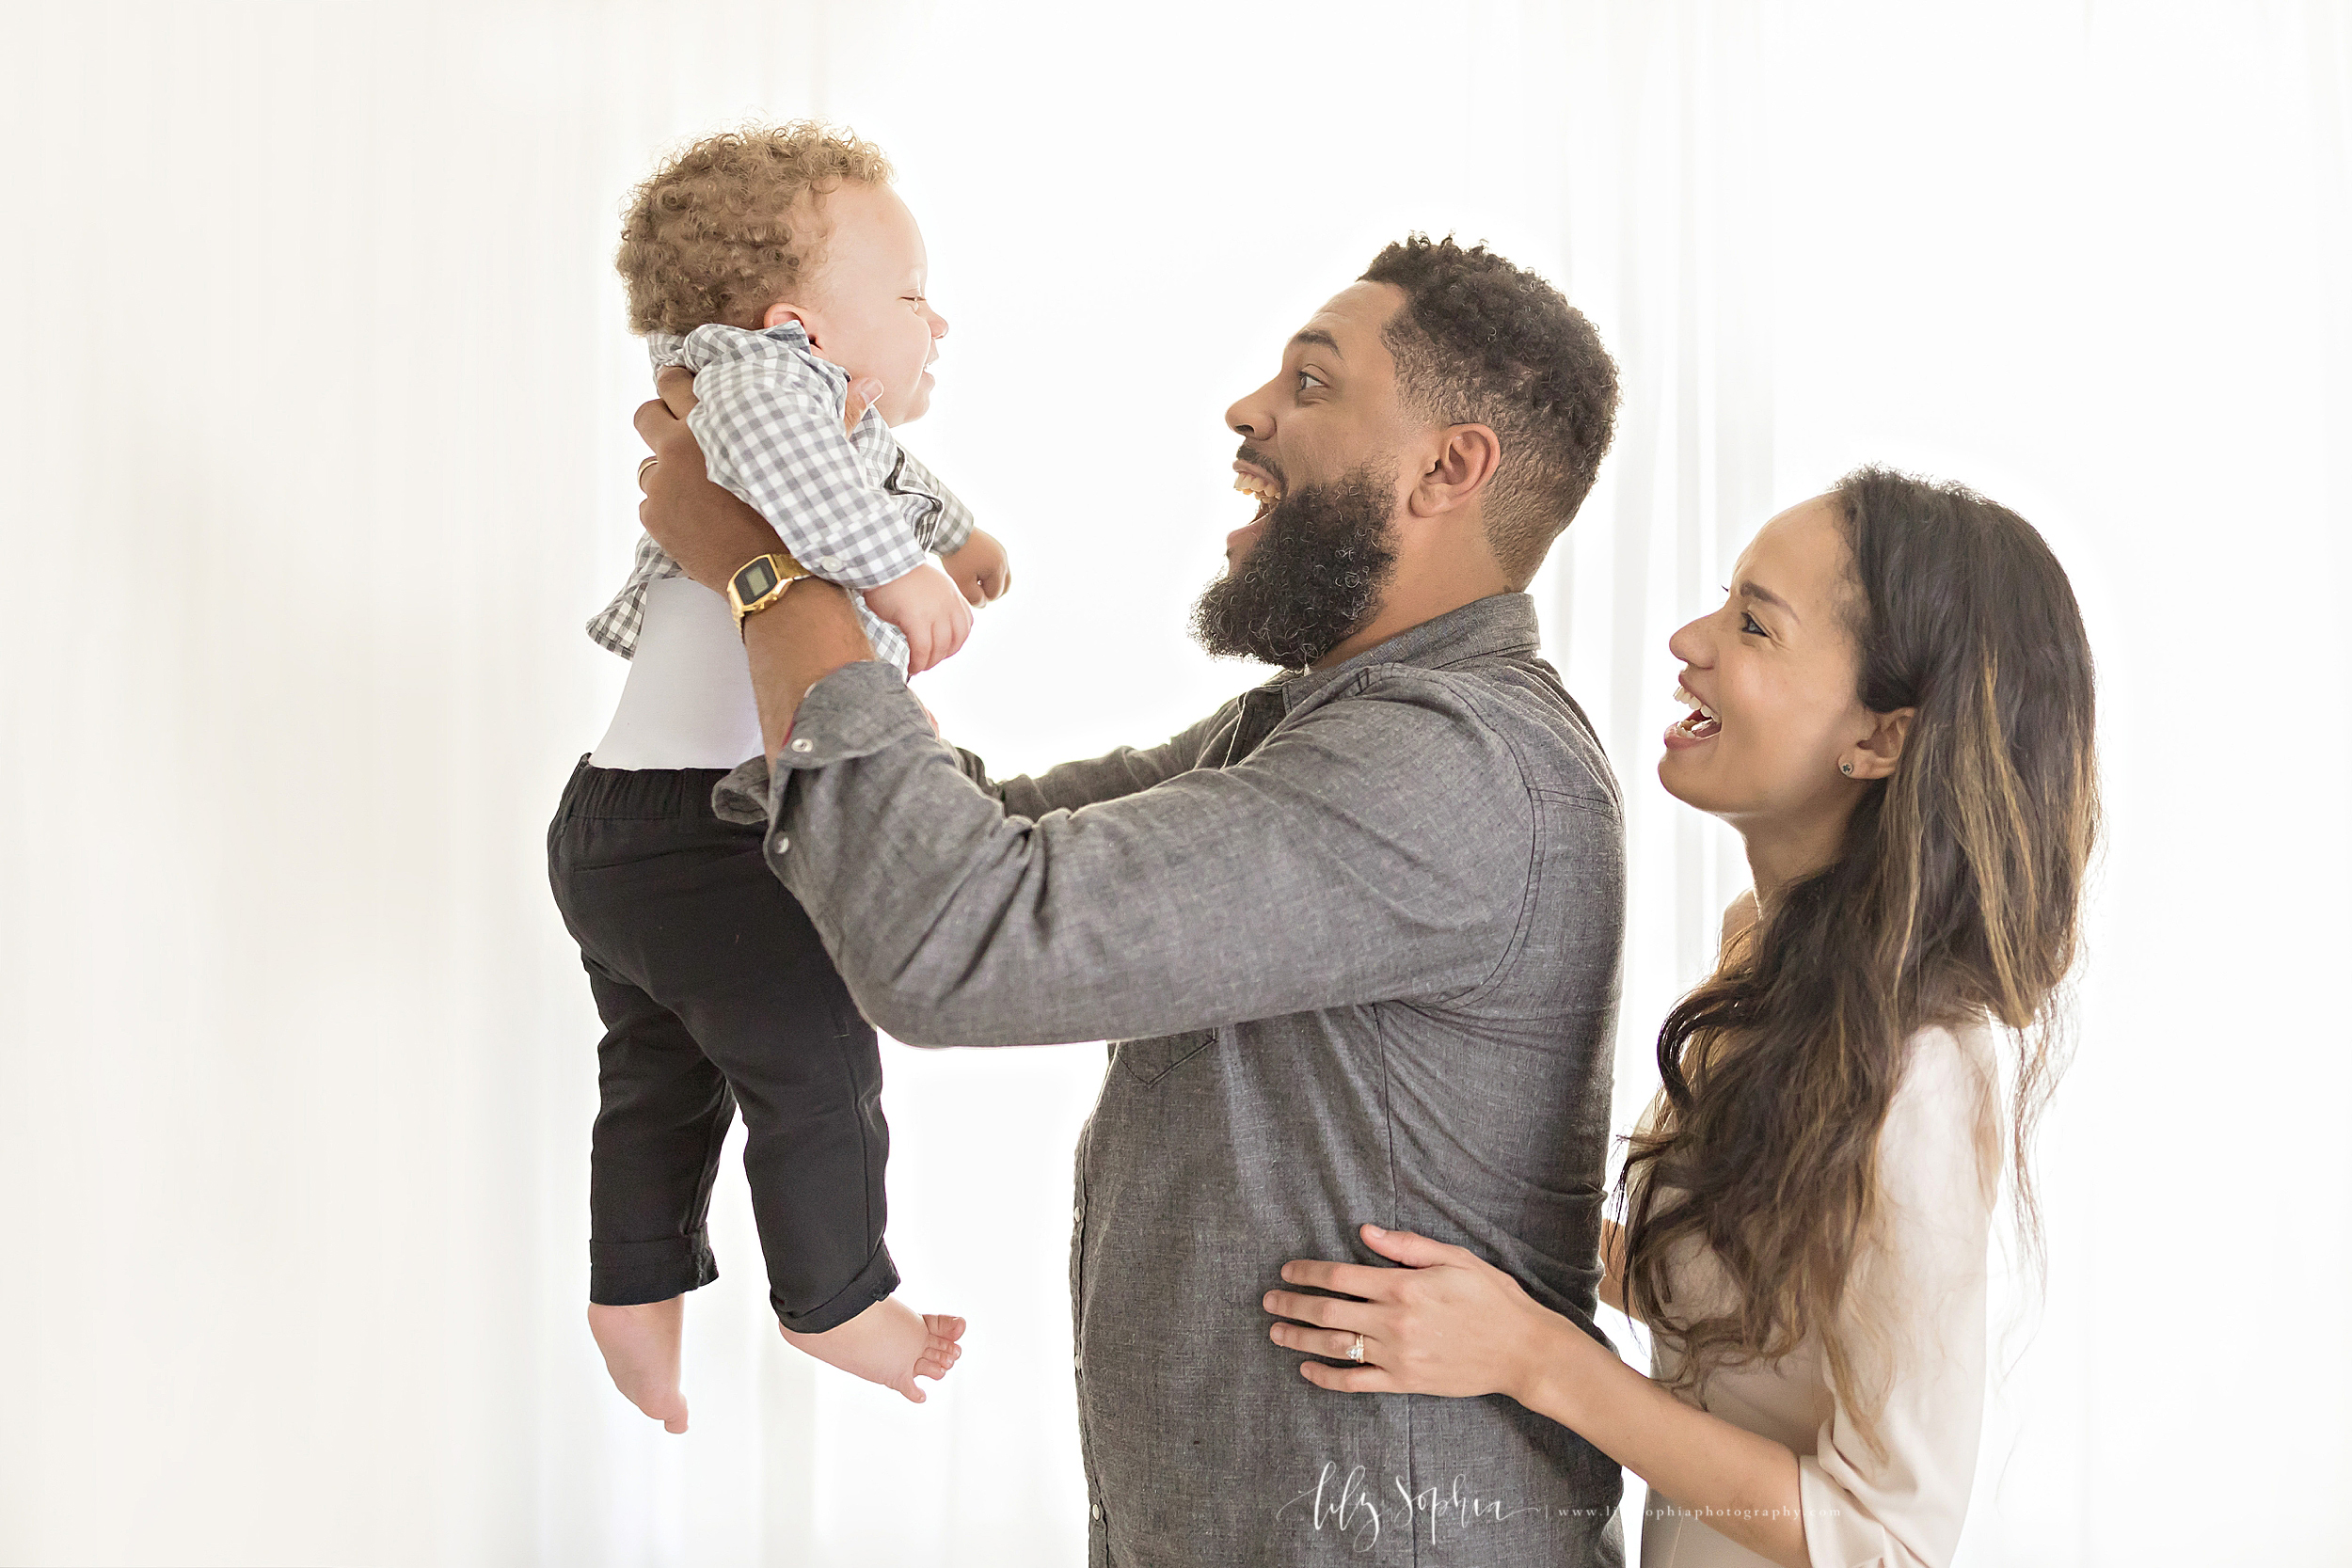 atlanta-midtown-brookhaven-decatur-lily-sophia-photography-photographer-portraits-grant-park-studio-first-birthday-one-year-old-toddler-baby-boy-family_0168.jpg